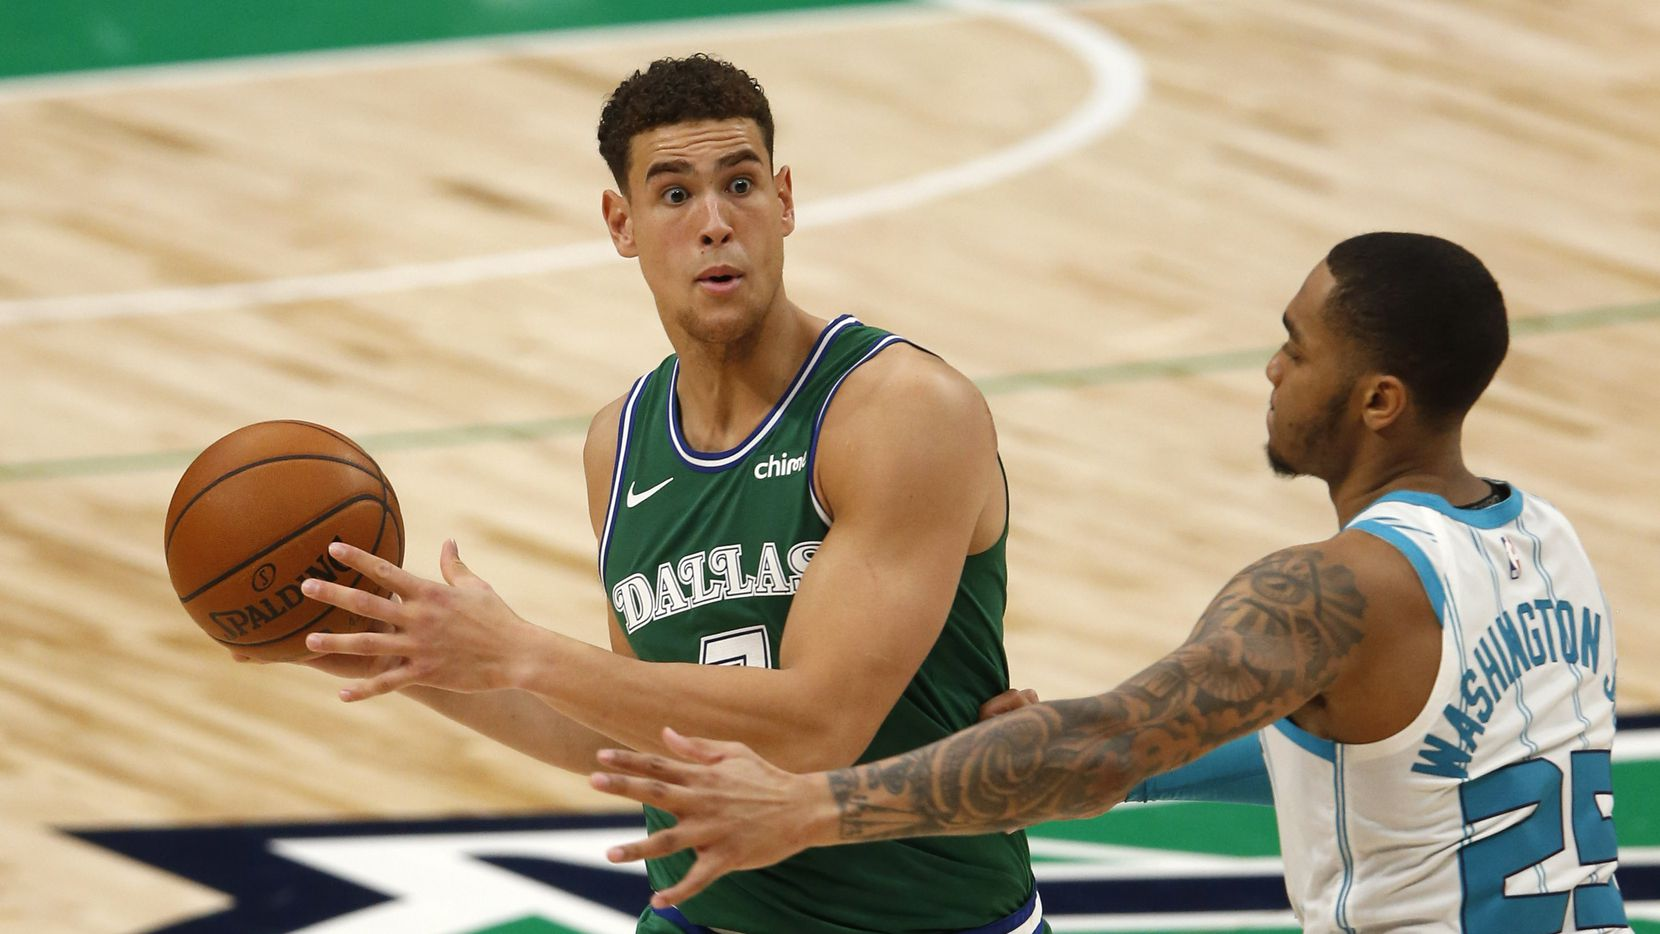 Dallas Mavericks center Dwight Powell (7) looks to pass as he is defended by Charlotte Hornets forward P.J. Washington (25) during the second quarter of play in the home opener at American Airlines Center on Wednesday, December 30, 2020 in Dallas.